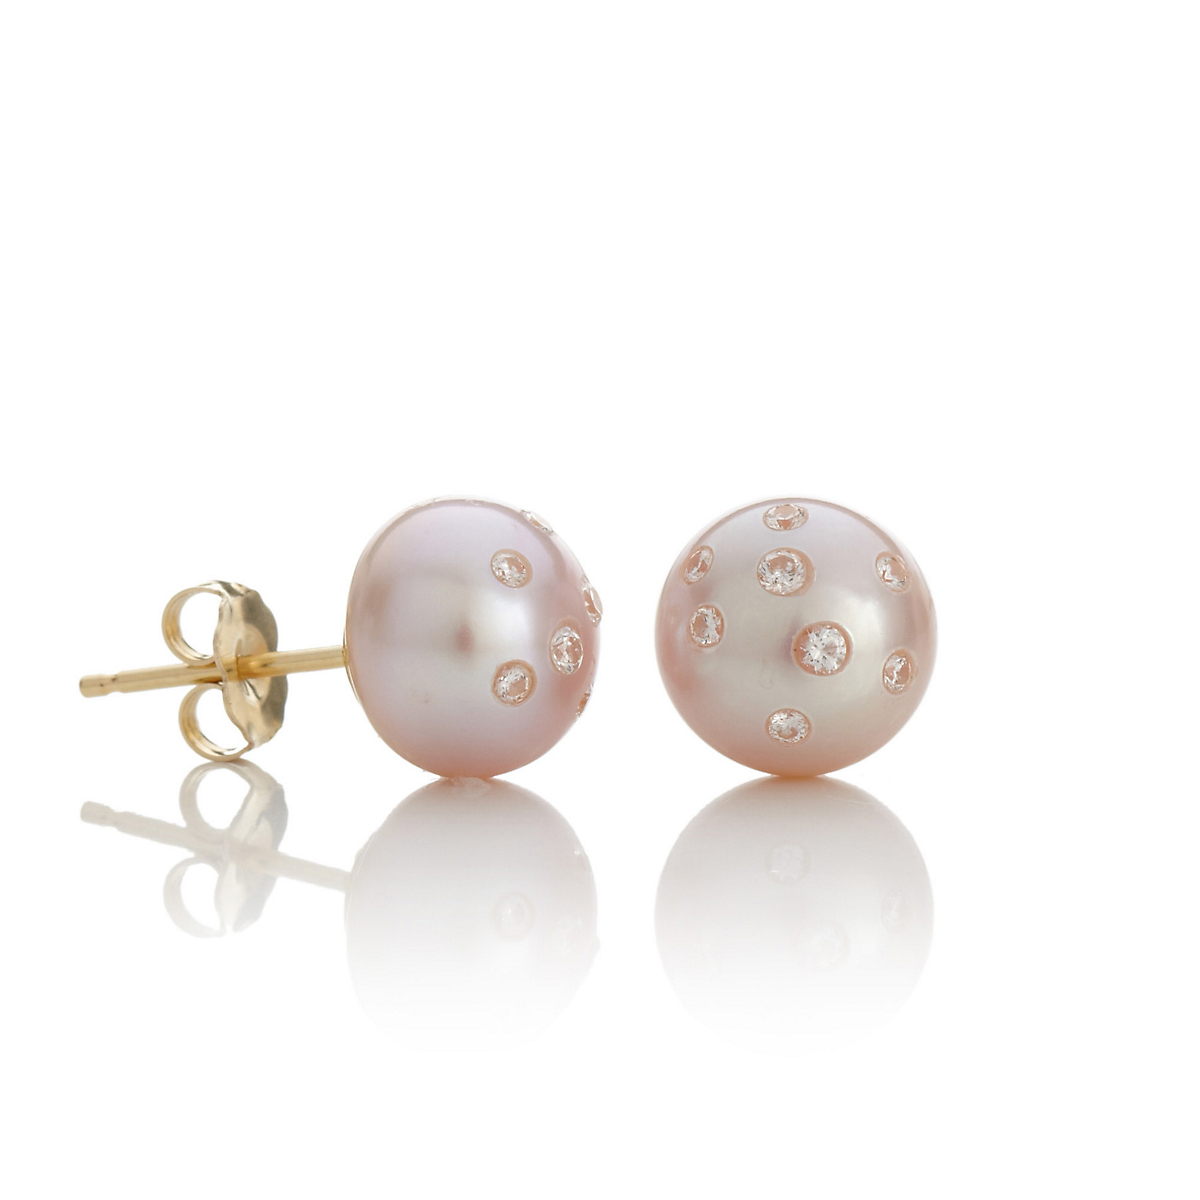 Russell Trusso Pink Coin Pearl Earrings, Small